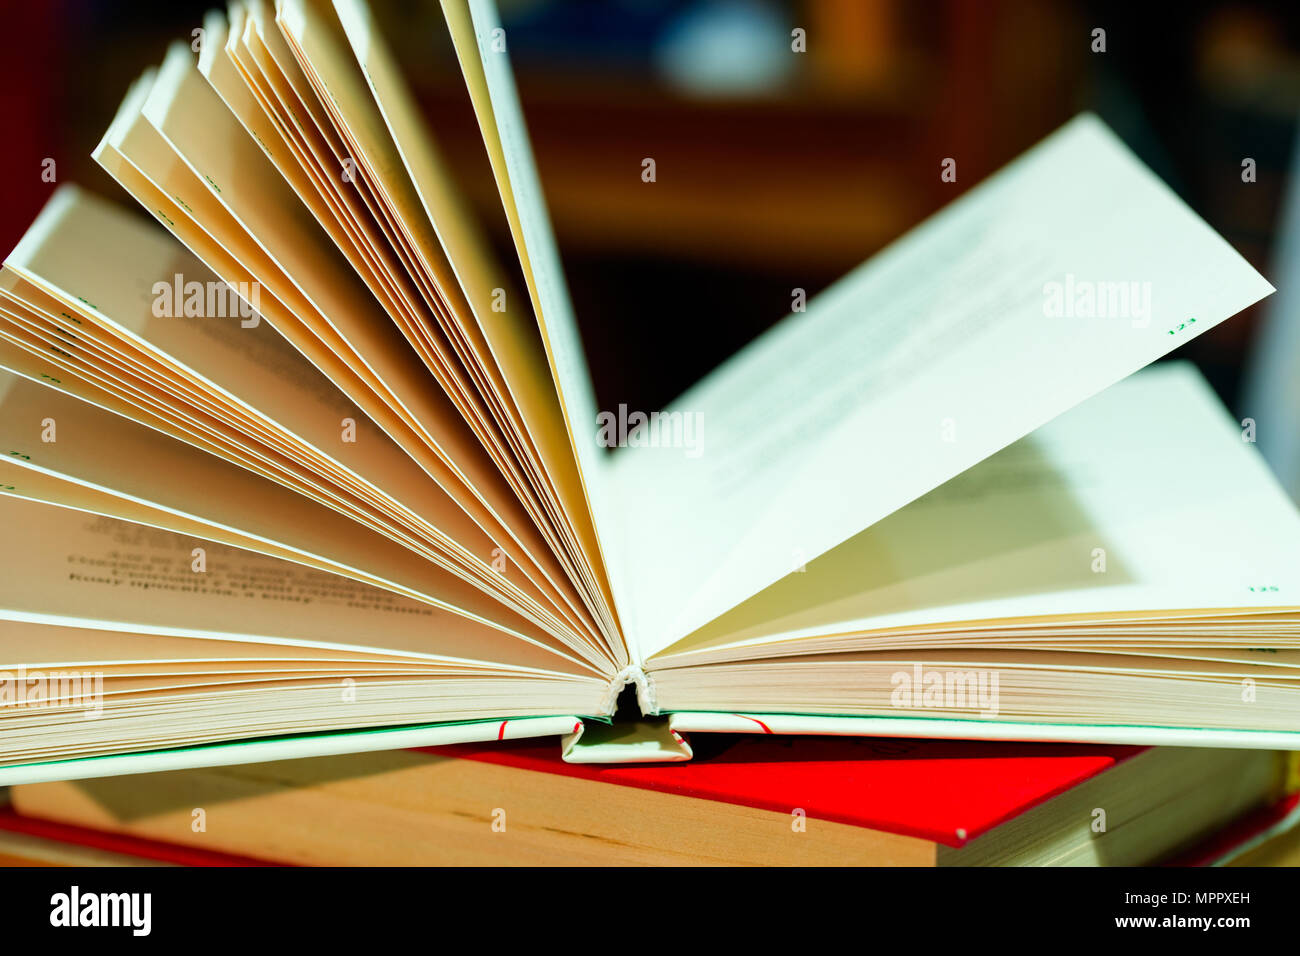 Open book on table. Back to school. Copy space - Stock Image